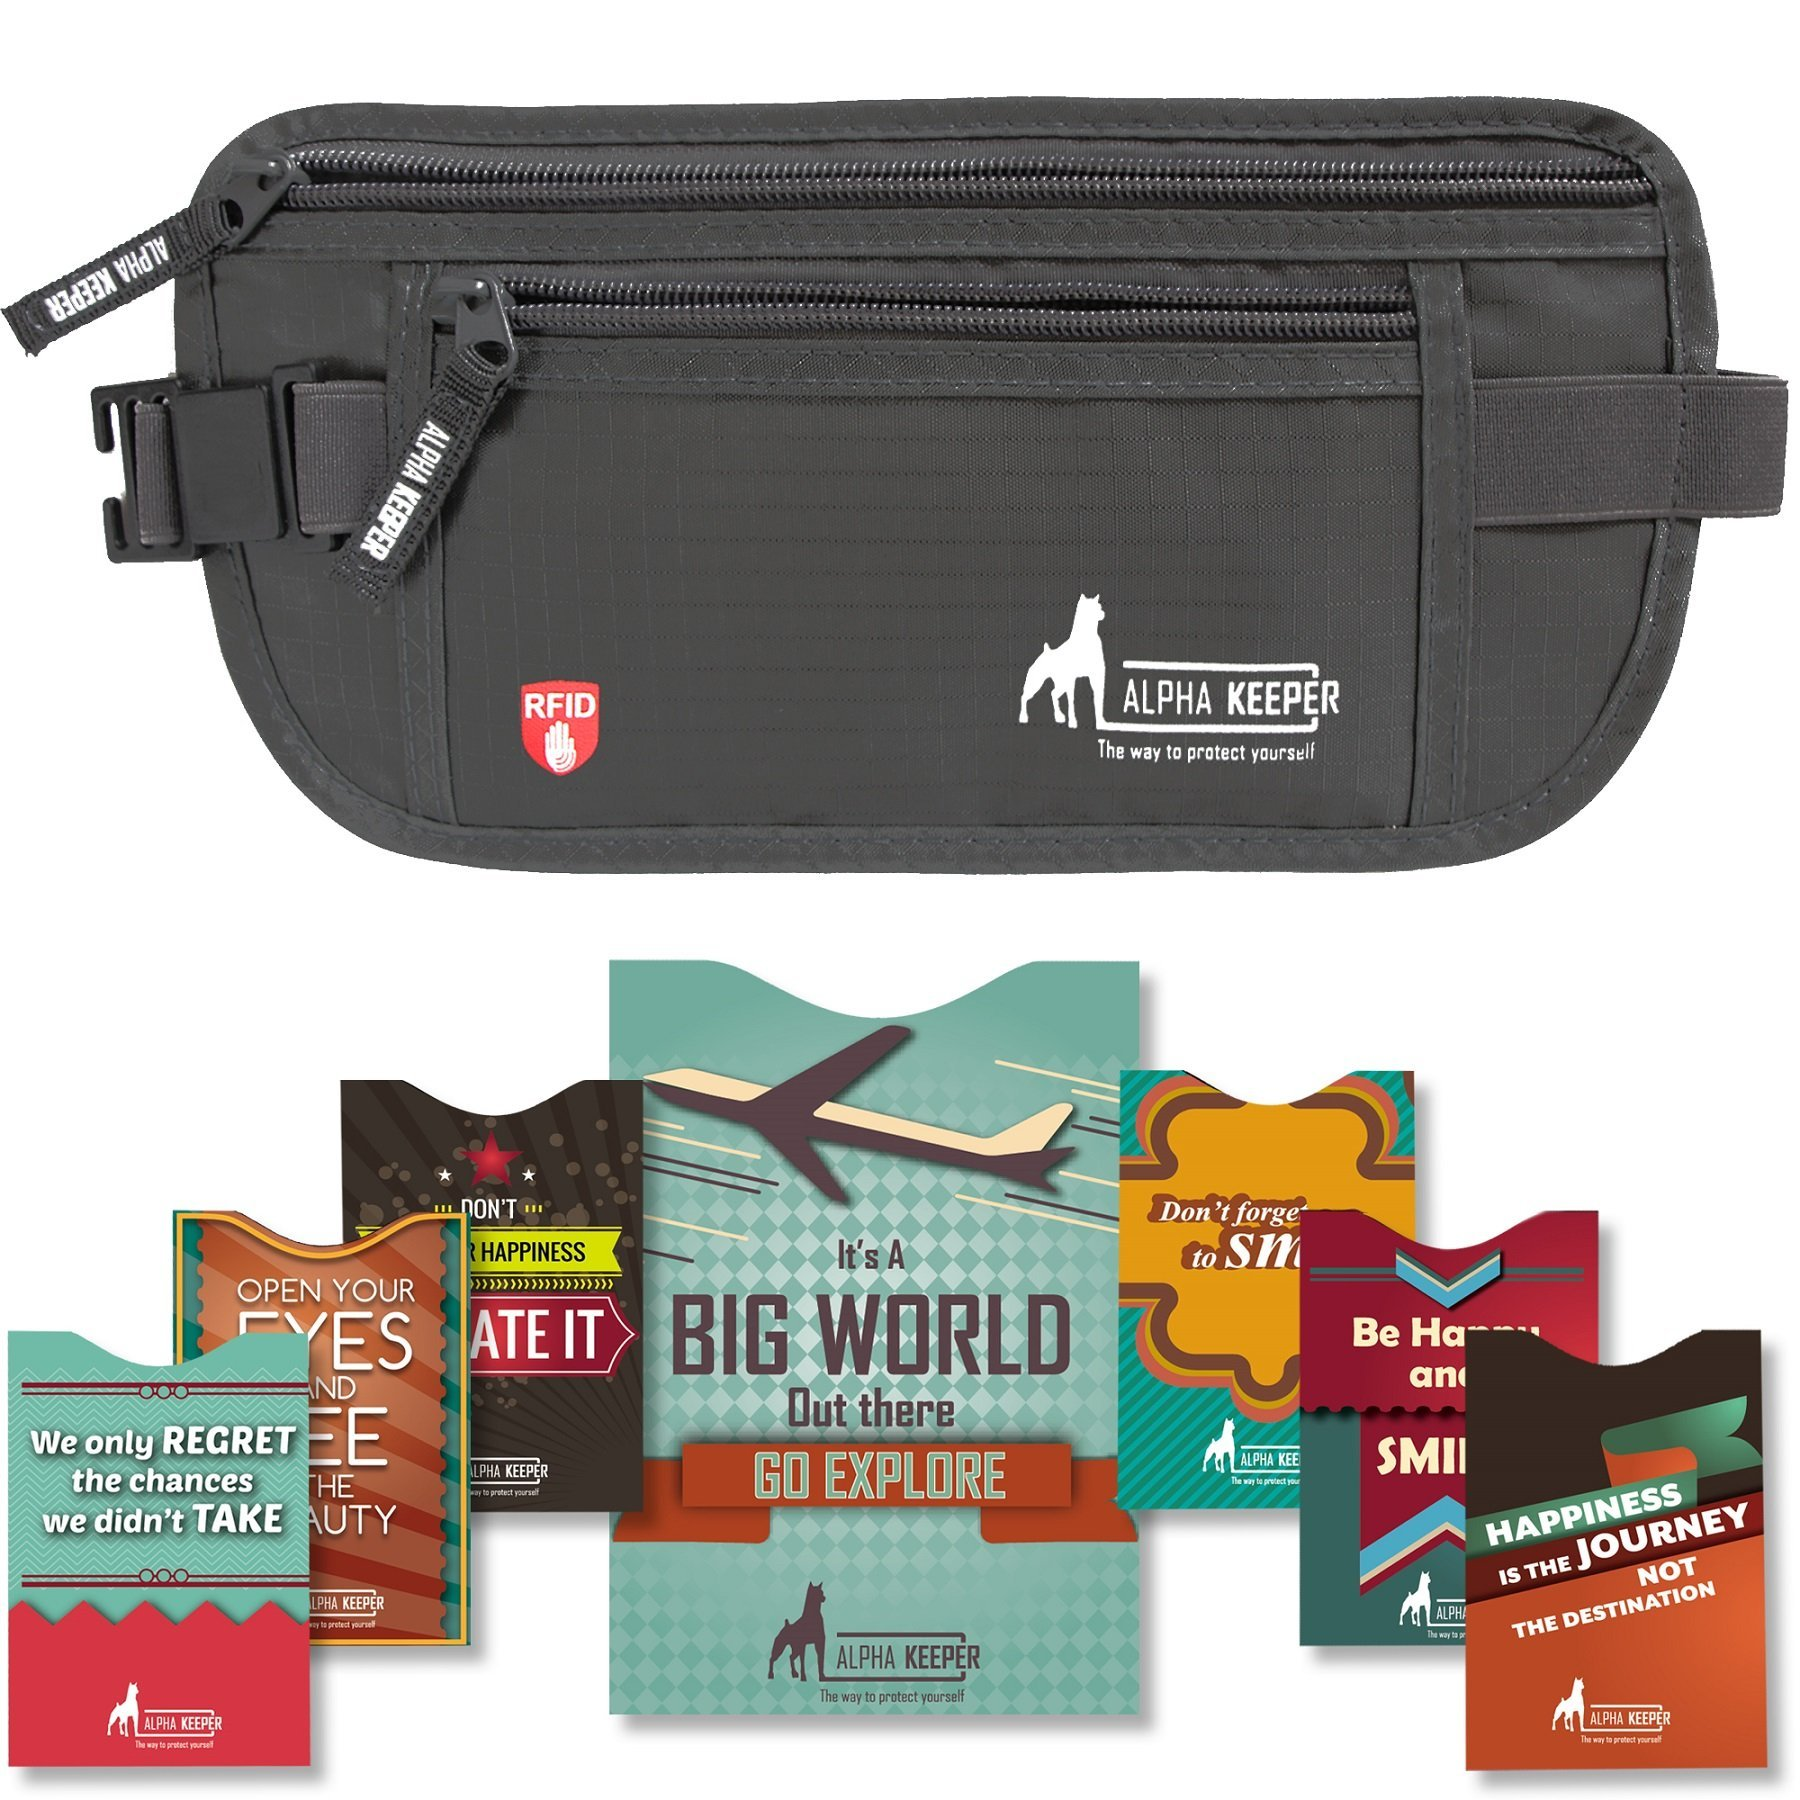 RFID Money Belt For Travel With RFID Blocking Sleeves Set For Daily Use by Alpha Keeper